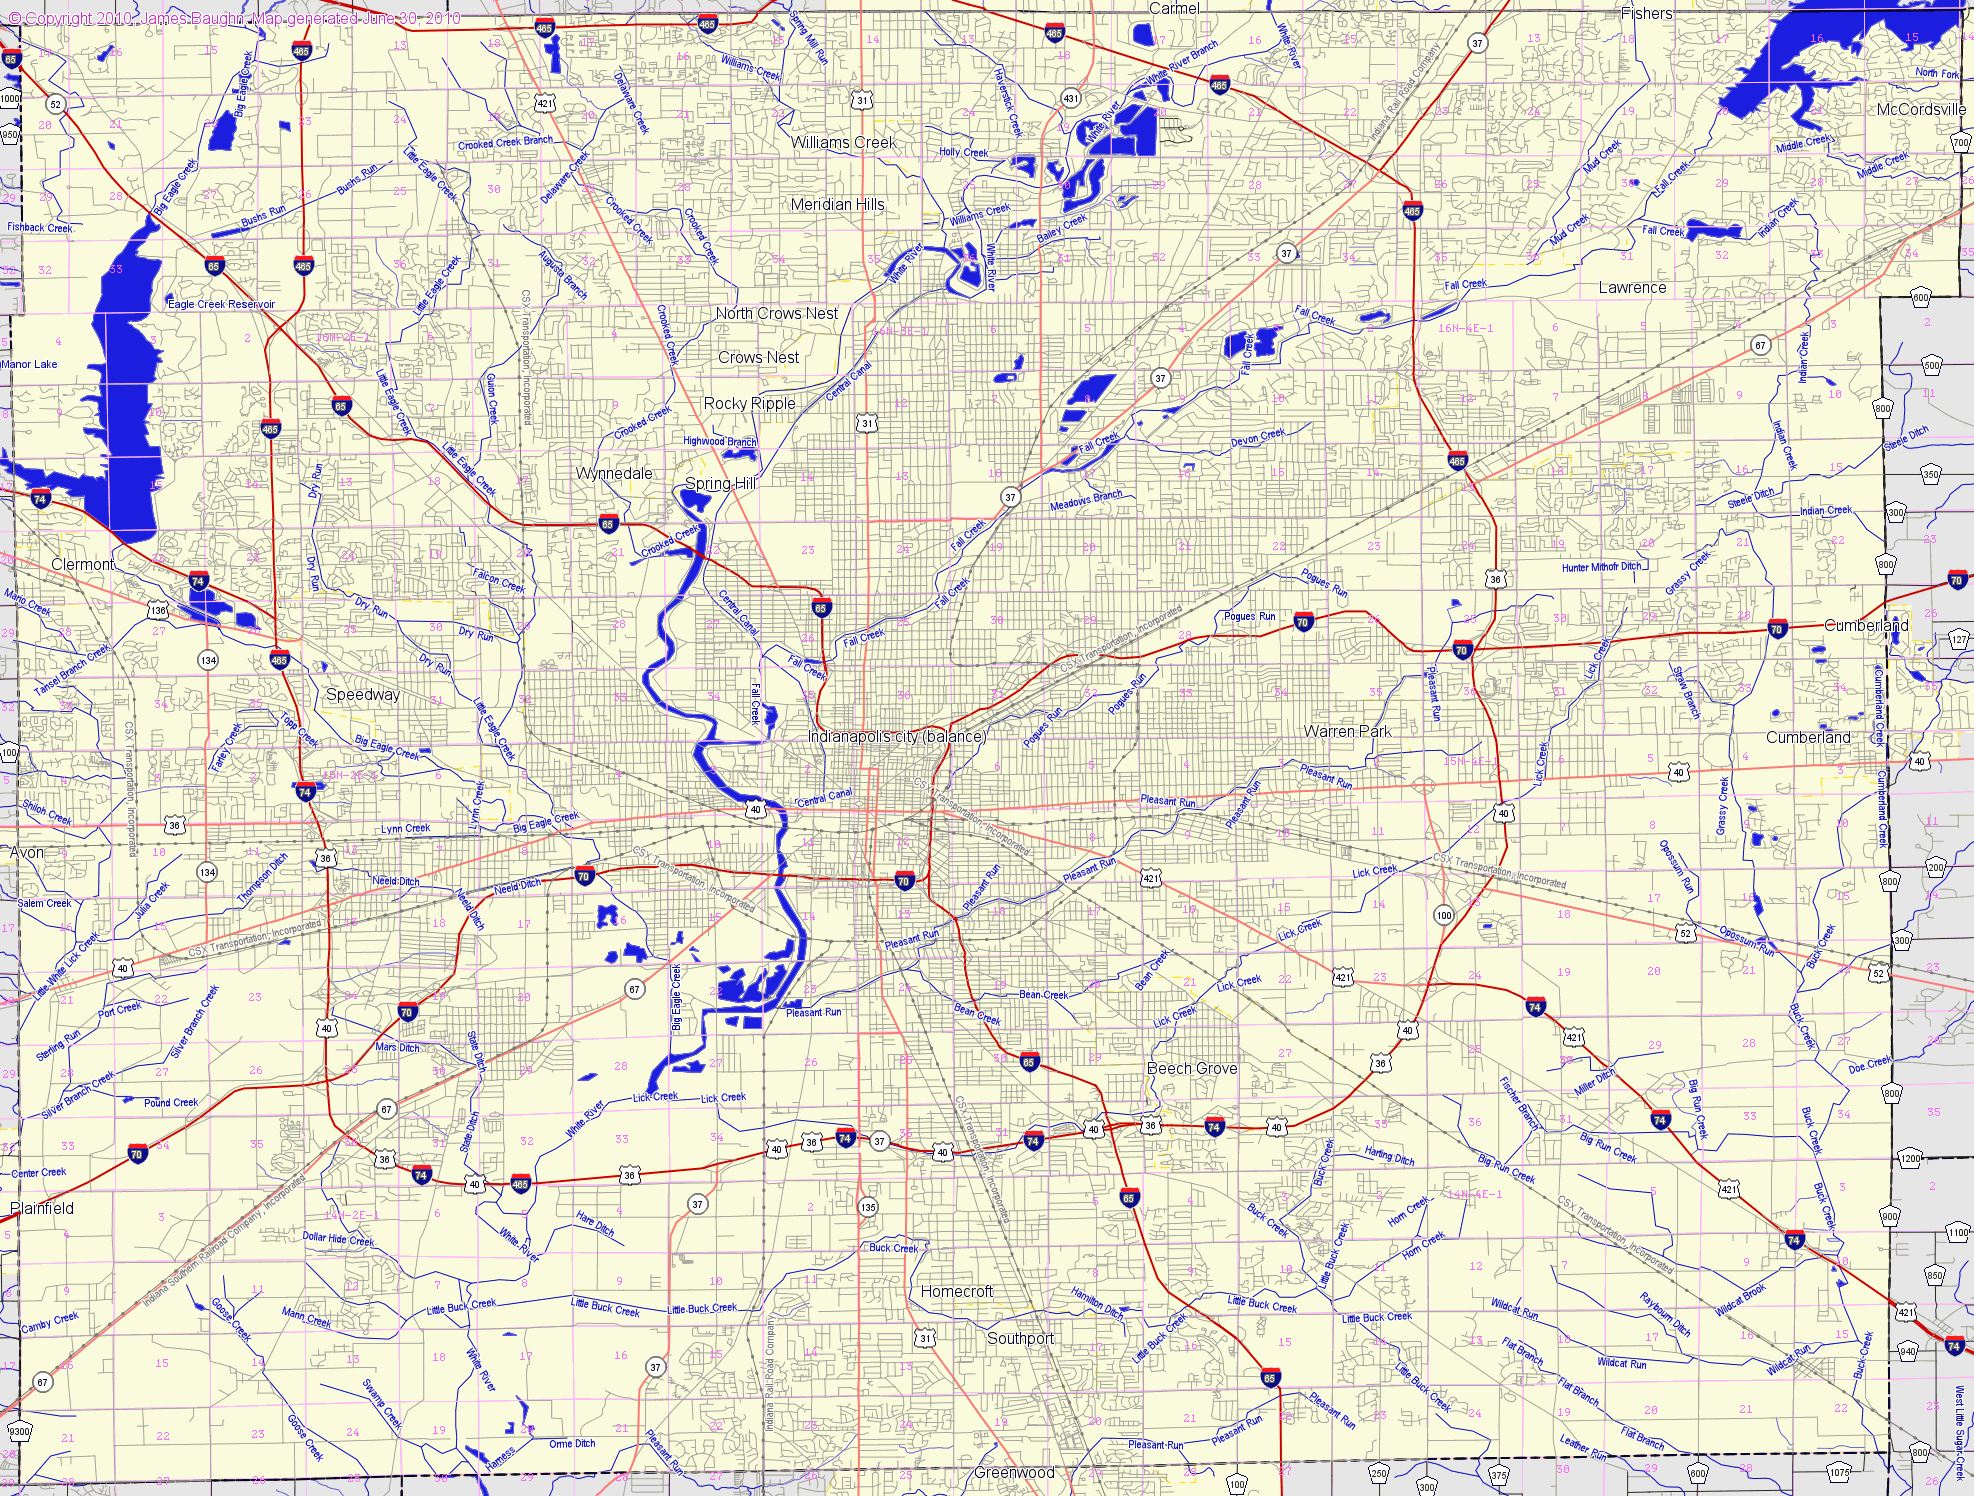 Statecountymap besides Ranchmt together with Tasmaniafreec ingmap also Facts besides Airdrie. on hamilton farms